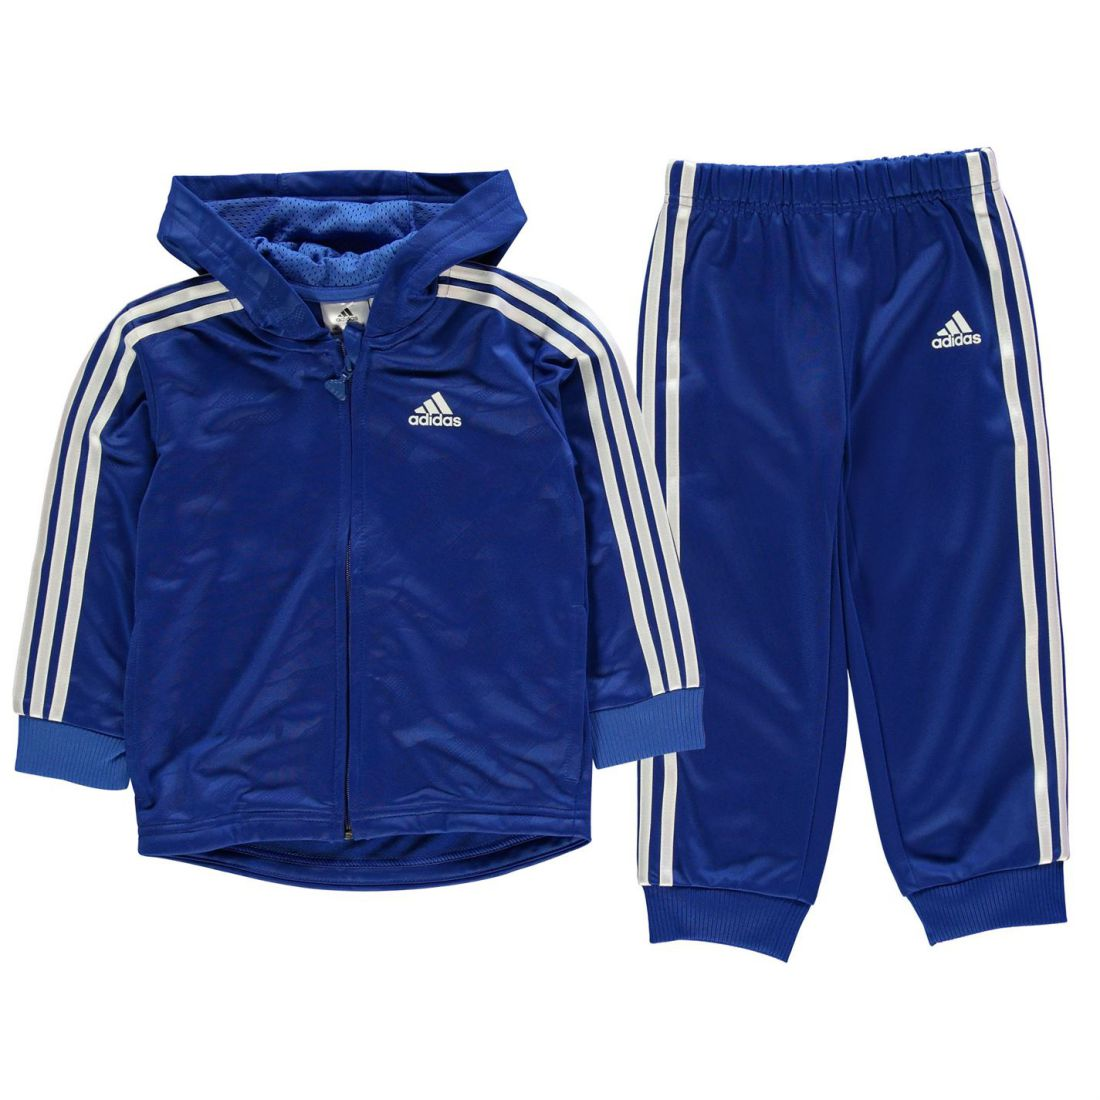 41c6e618cc77 adidas Kids Boys 3 Stripe Poly Tracksuit Infant Long Sleeve Lightweight  Hooded